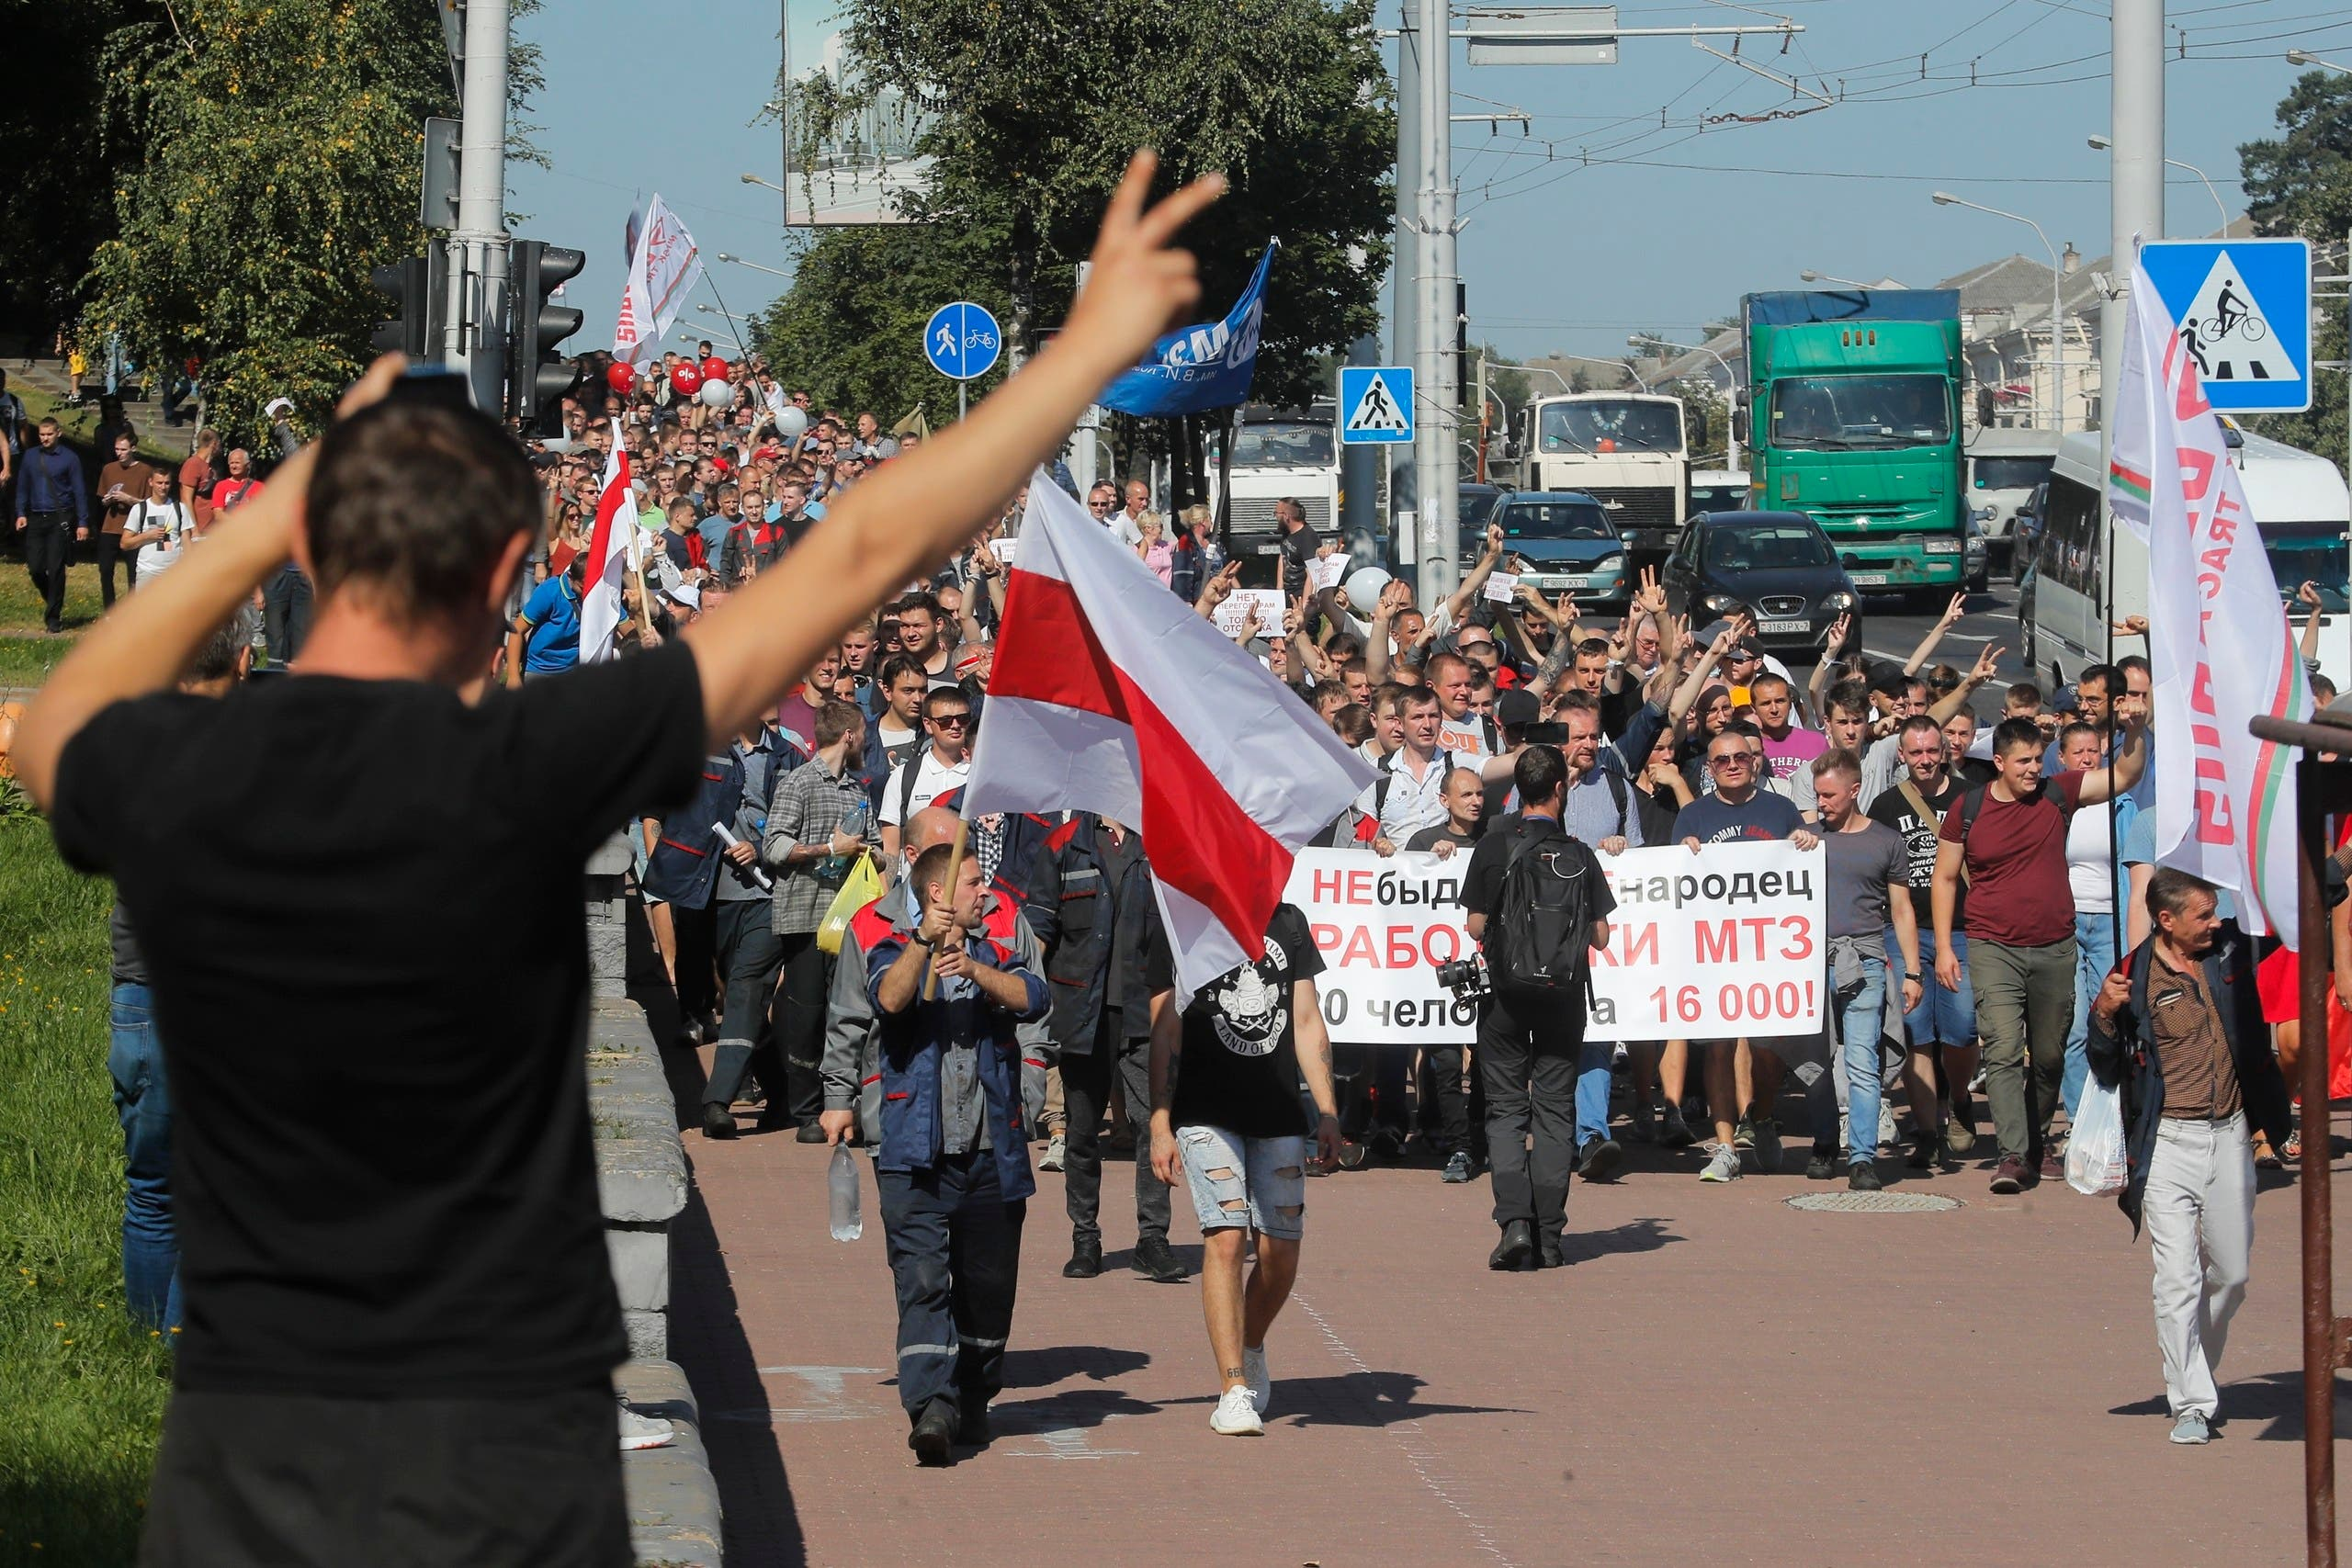 Workers with old Belarusian national flags march toward the Minsk Wheel Tractor Plant where Belarusian President Alexander Lukashenko addresses employees in Minsk, Belarus on Aug. 17, 2020. (AP)